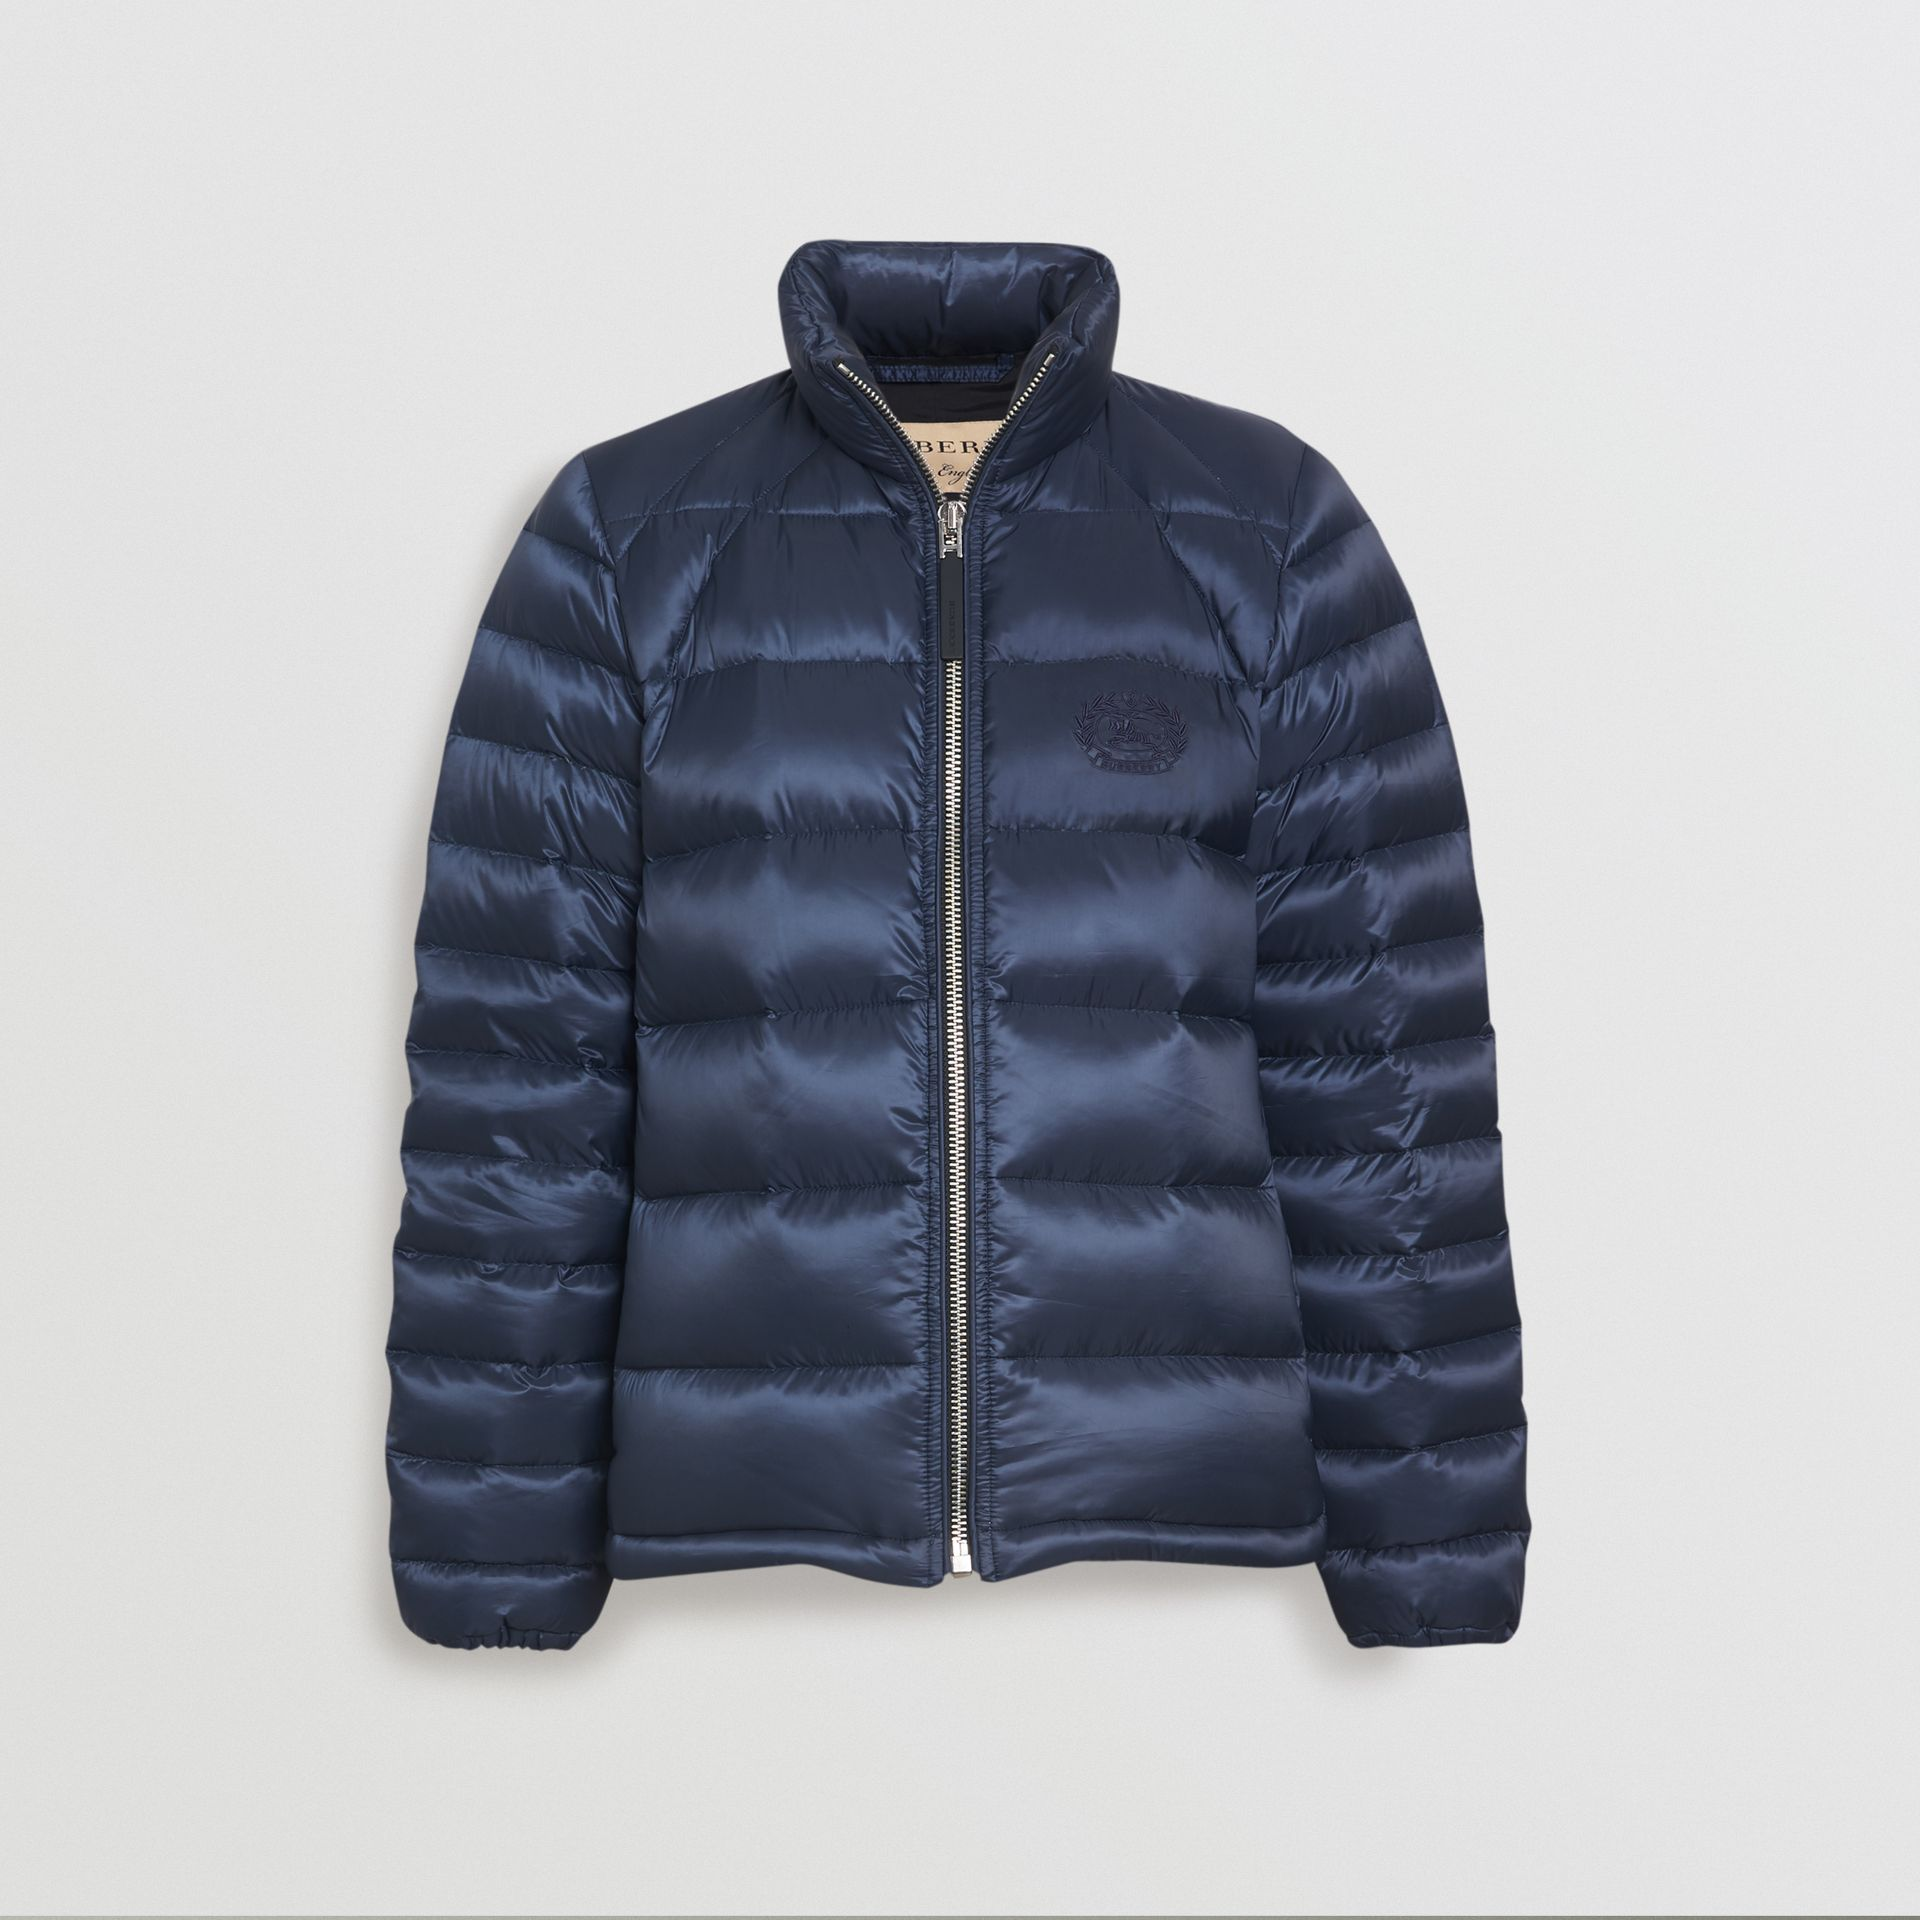 Down-filled Puffer Jacket in Navy - Women | Burberry United States - gallery image 2